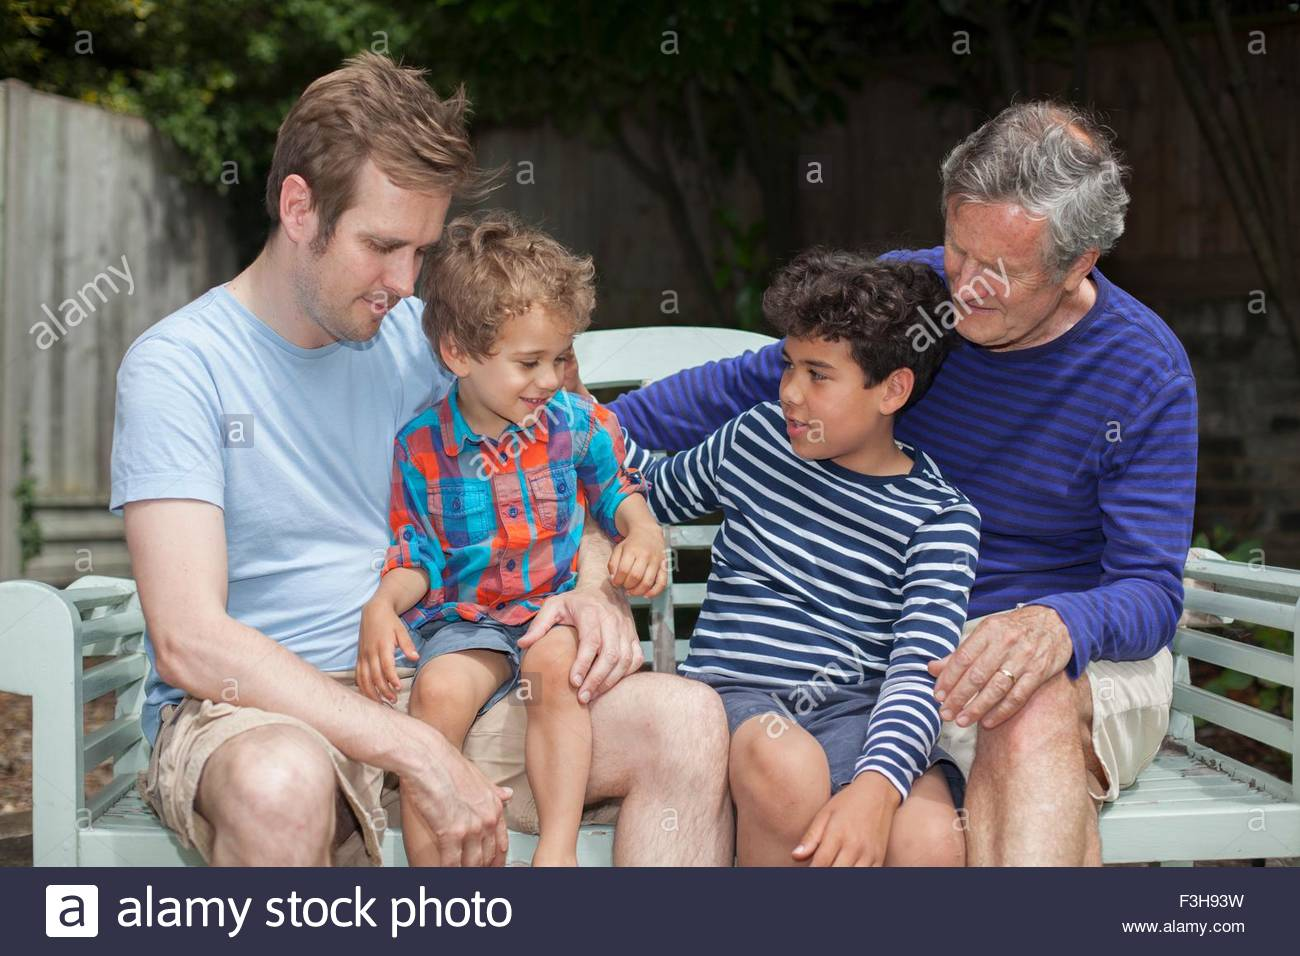 Three generation family in garden - Stock Image